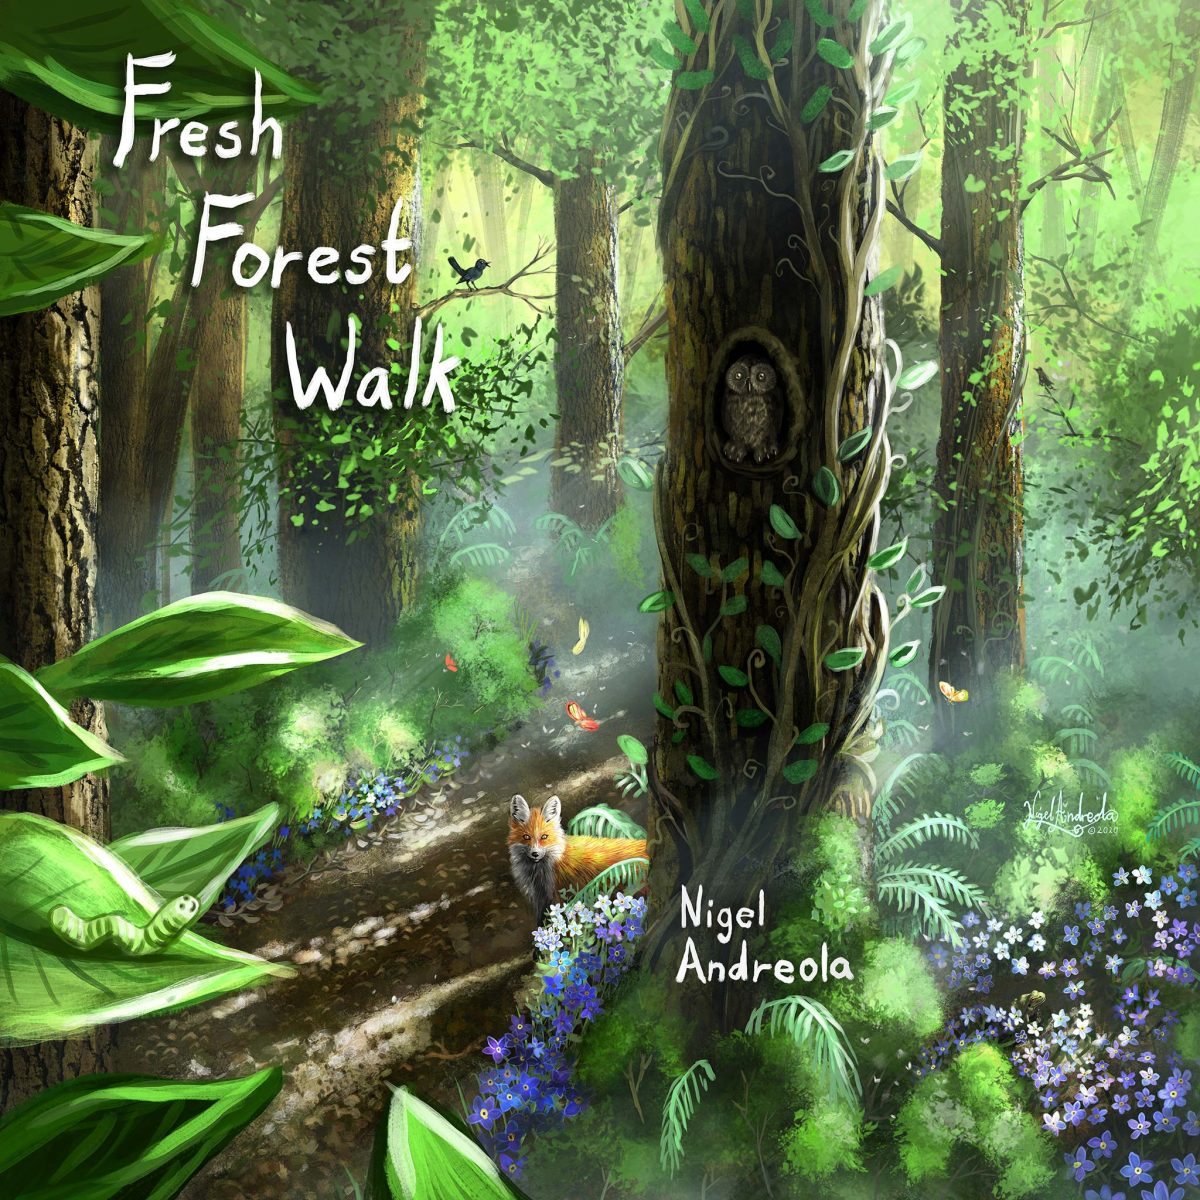 Fresh Forest Walk Nigel Andreola Cello and Harp